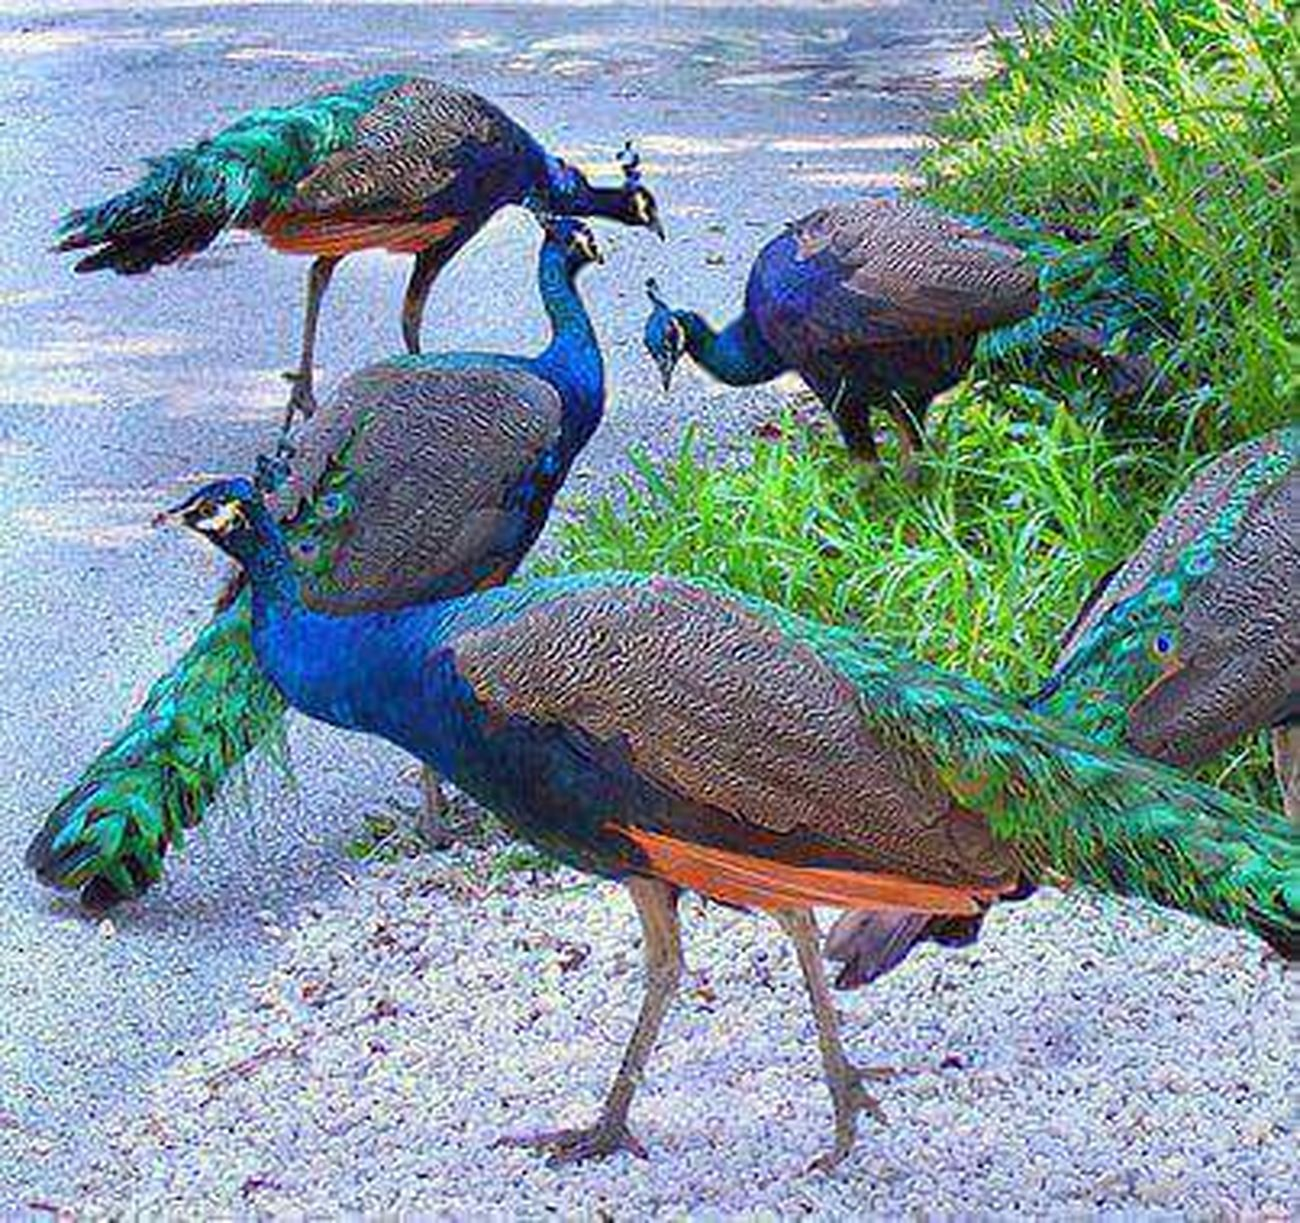 Hello World Peacockphotos Peacock Peacock Colors Peacock Pleasures Love To Take Photos ❤ Beautiful ♥ Bird Photography Birds_collection Global Photographer- Collection Global Photographer Works Exhibition Birds Lover Birds Of EyeEm  I Love It ❤ Have A Nice Day♥ Be Happy :) To All Beautiful Friends From India With Love... ... urs .. Nitin ..